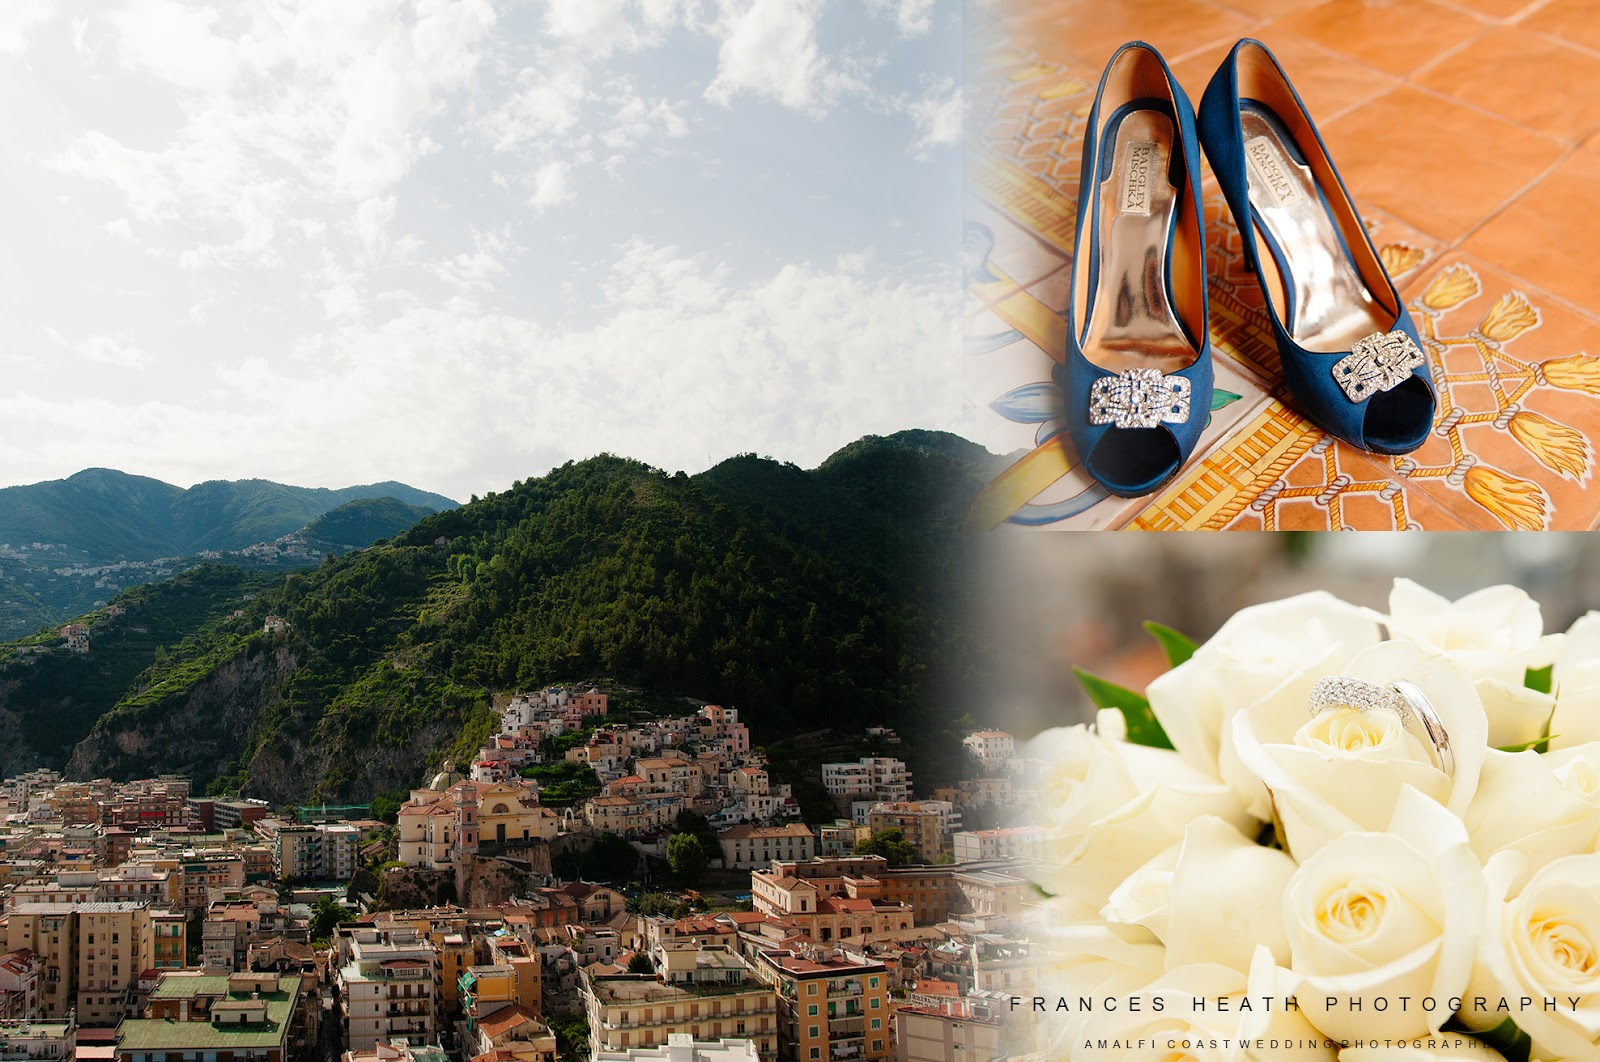 Wedding decoration and details on the Amalfi Coast